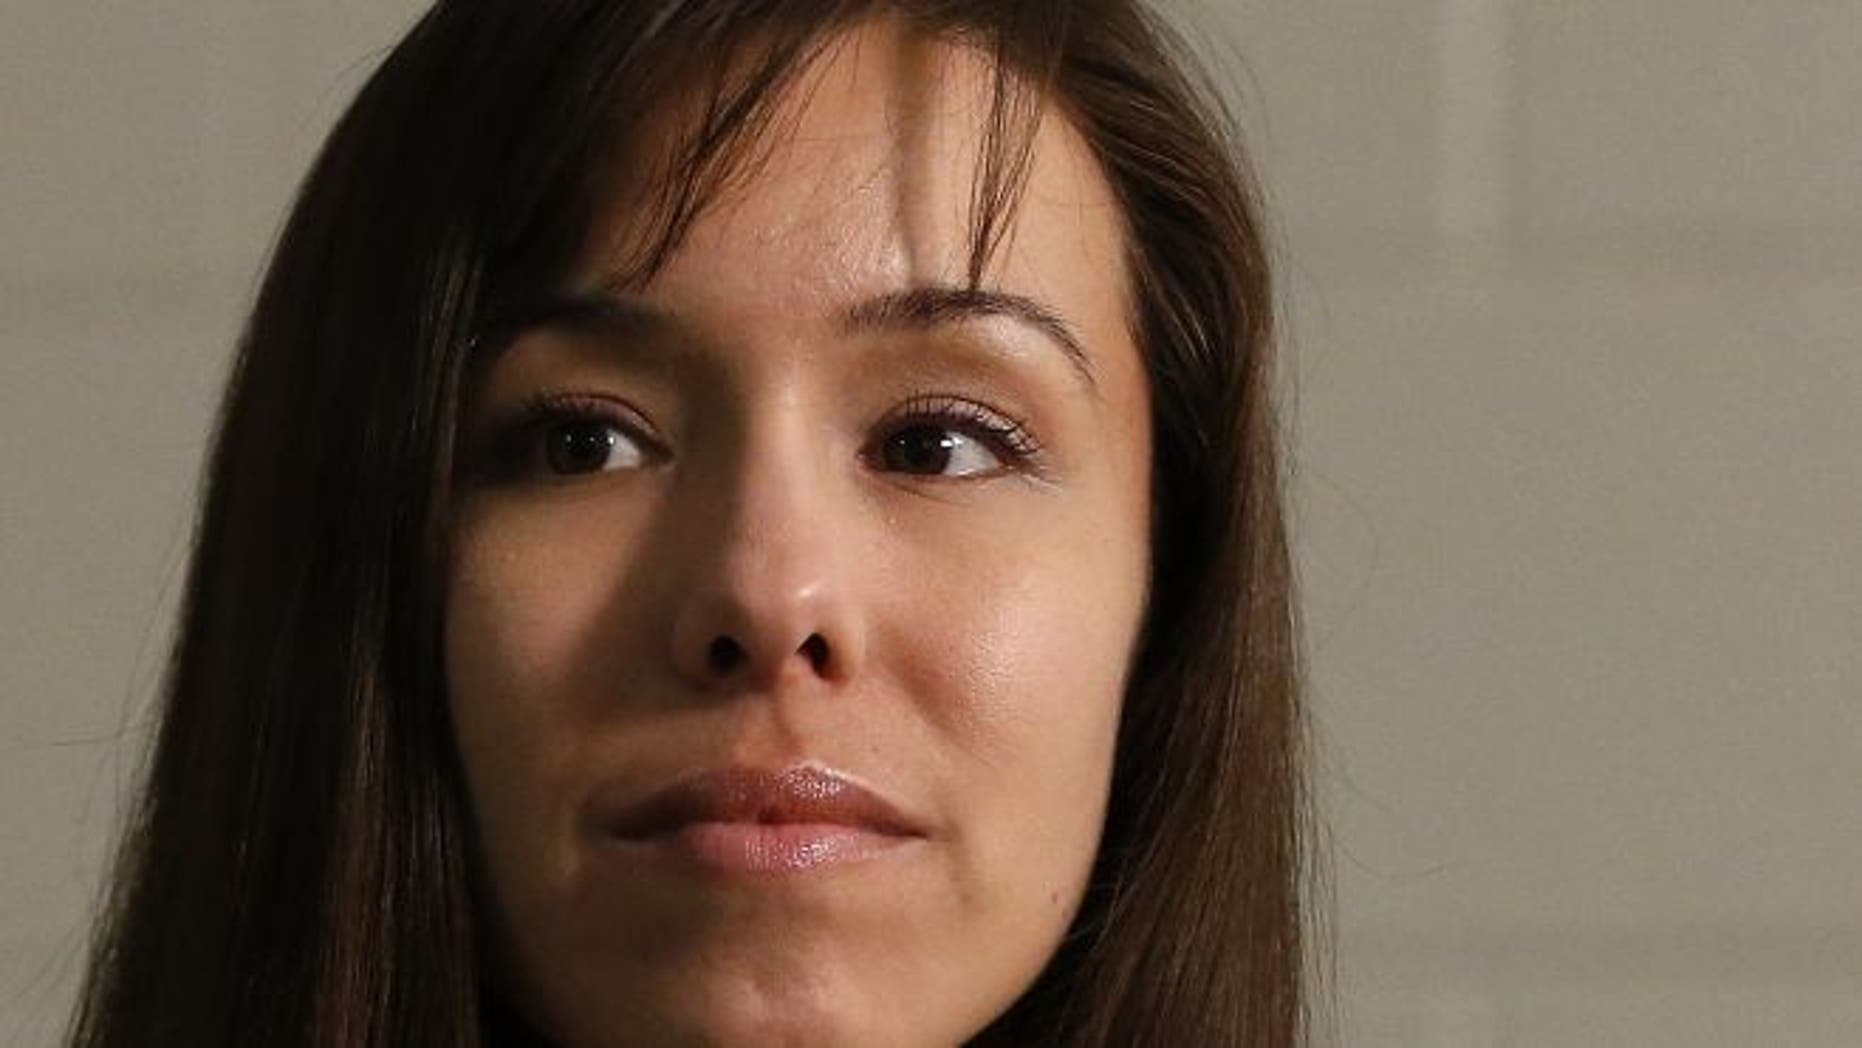 FILE: May 21, 2013: Convicted killer Jodi Arias thinks about a question asked during an interview at the Maricopa County Estrella Jail in Phoenix.